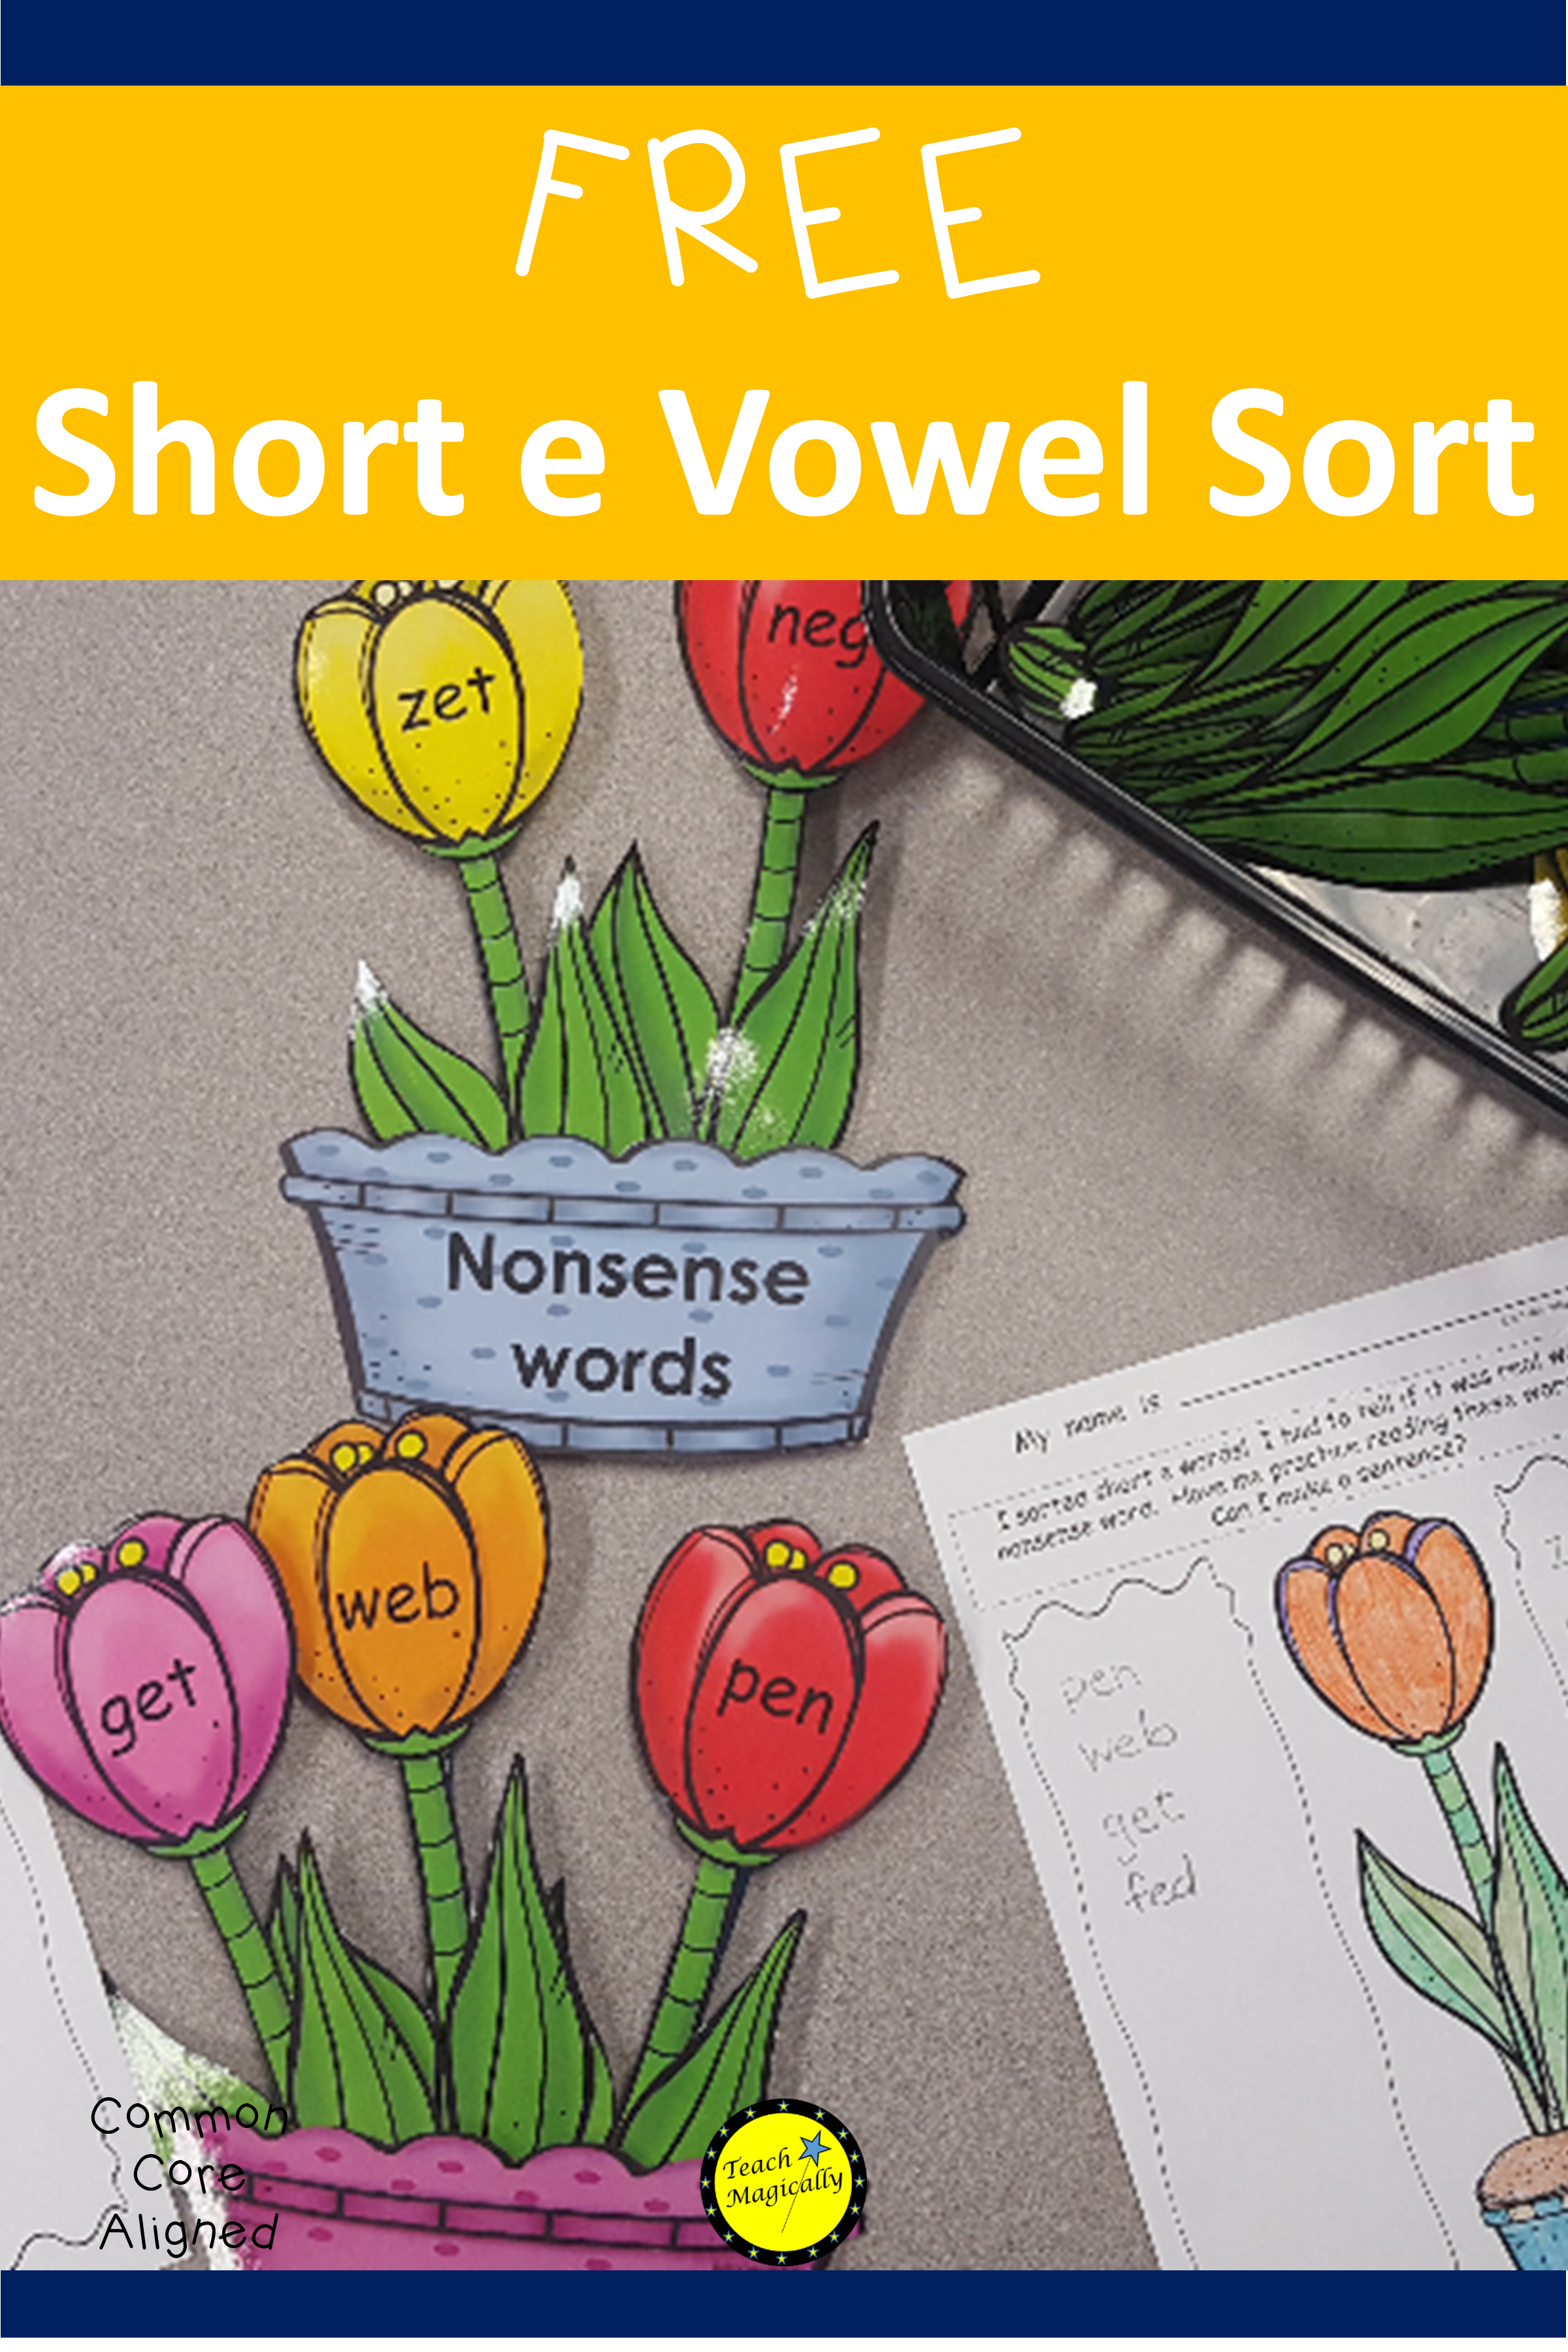 Short Vowel Activity To Focus On Short E Cvc And Nonsense Words Helps Teaching Of Blending For Kindergart Nonsense Words Reading Cvc Words Writing Sight Words [ 3600 x 2400 Pixel ]